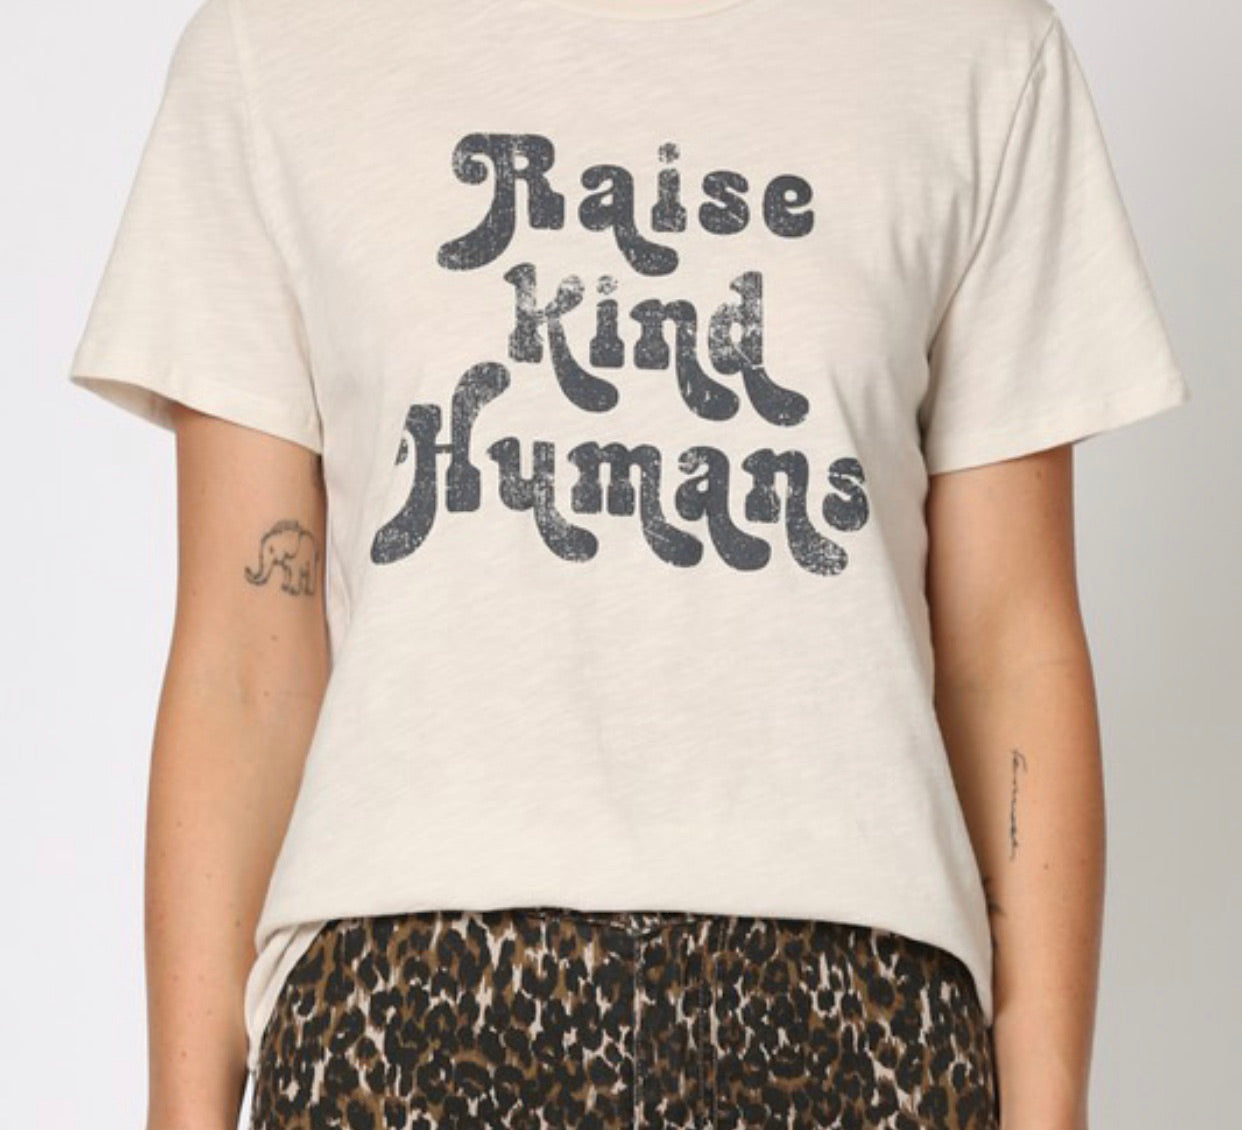 """Raise kind humans"" cotton jersey short sleeve top 